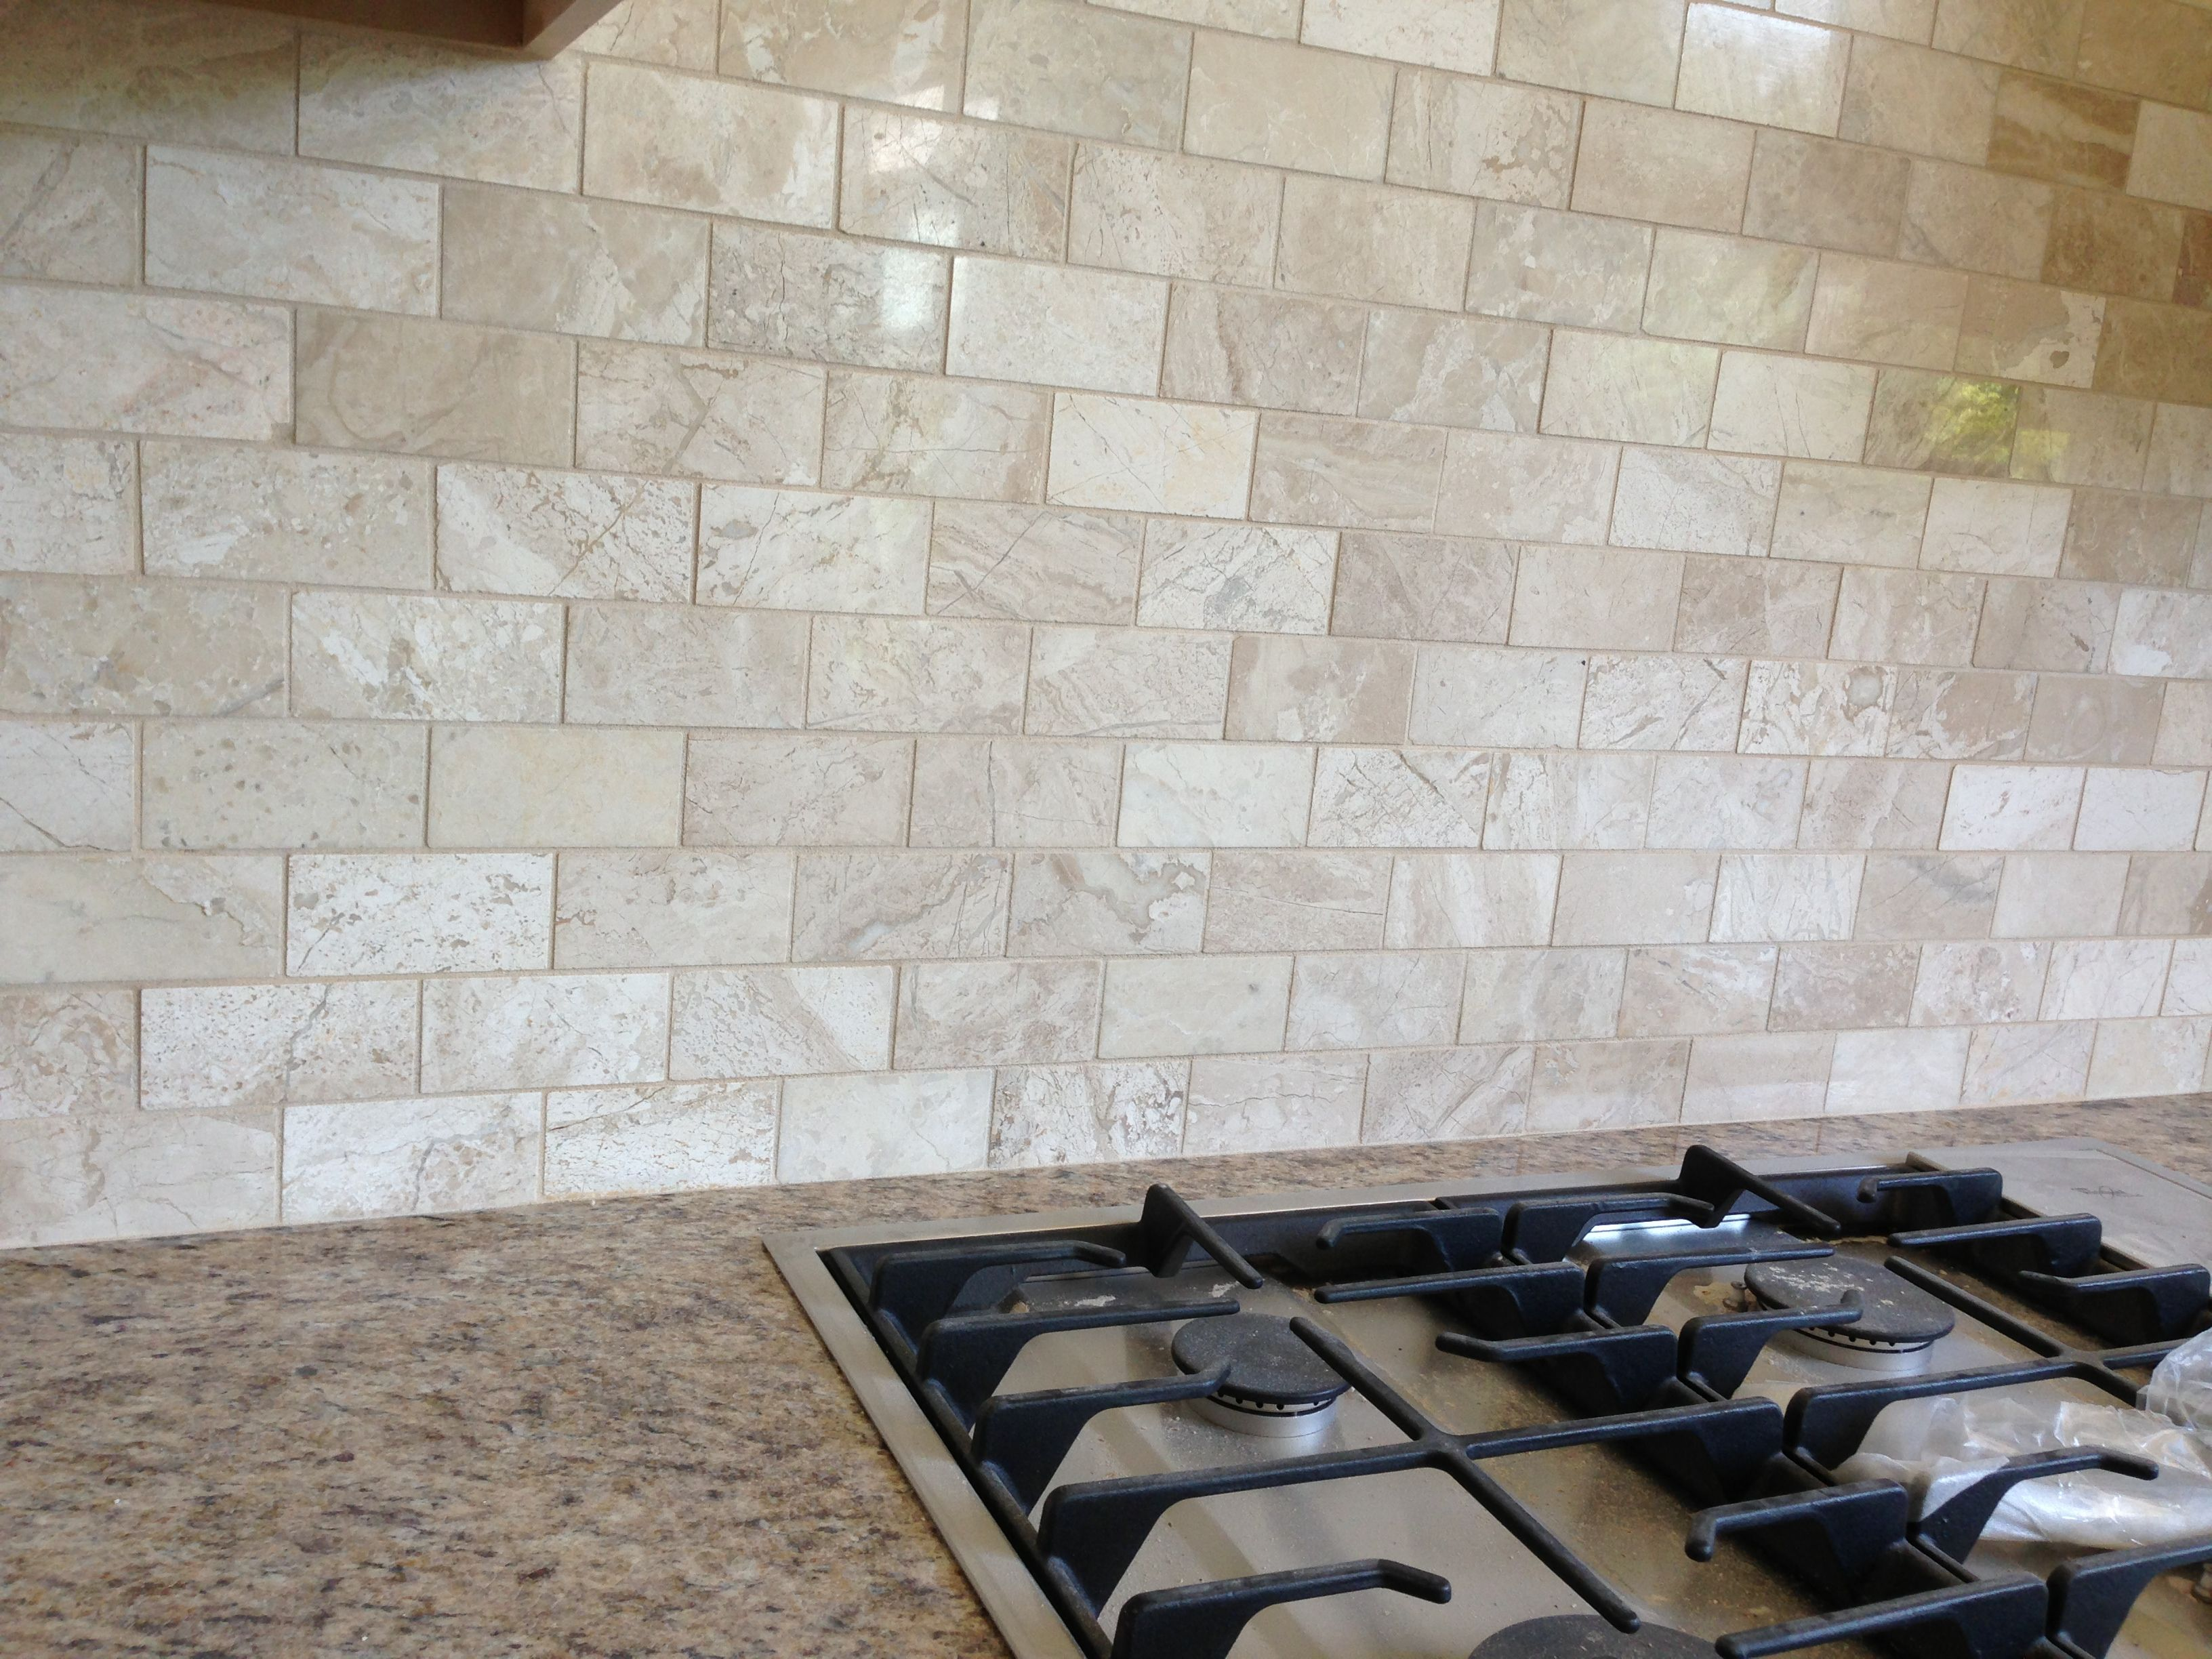 Queen beige marble backsplash